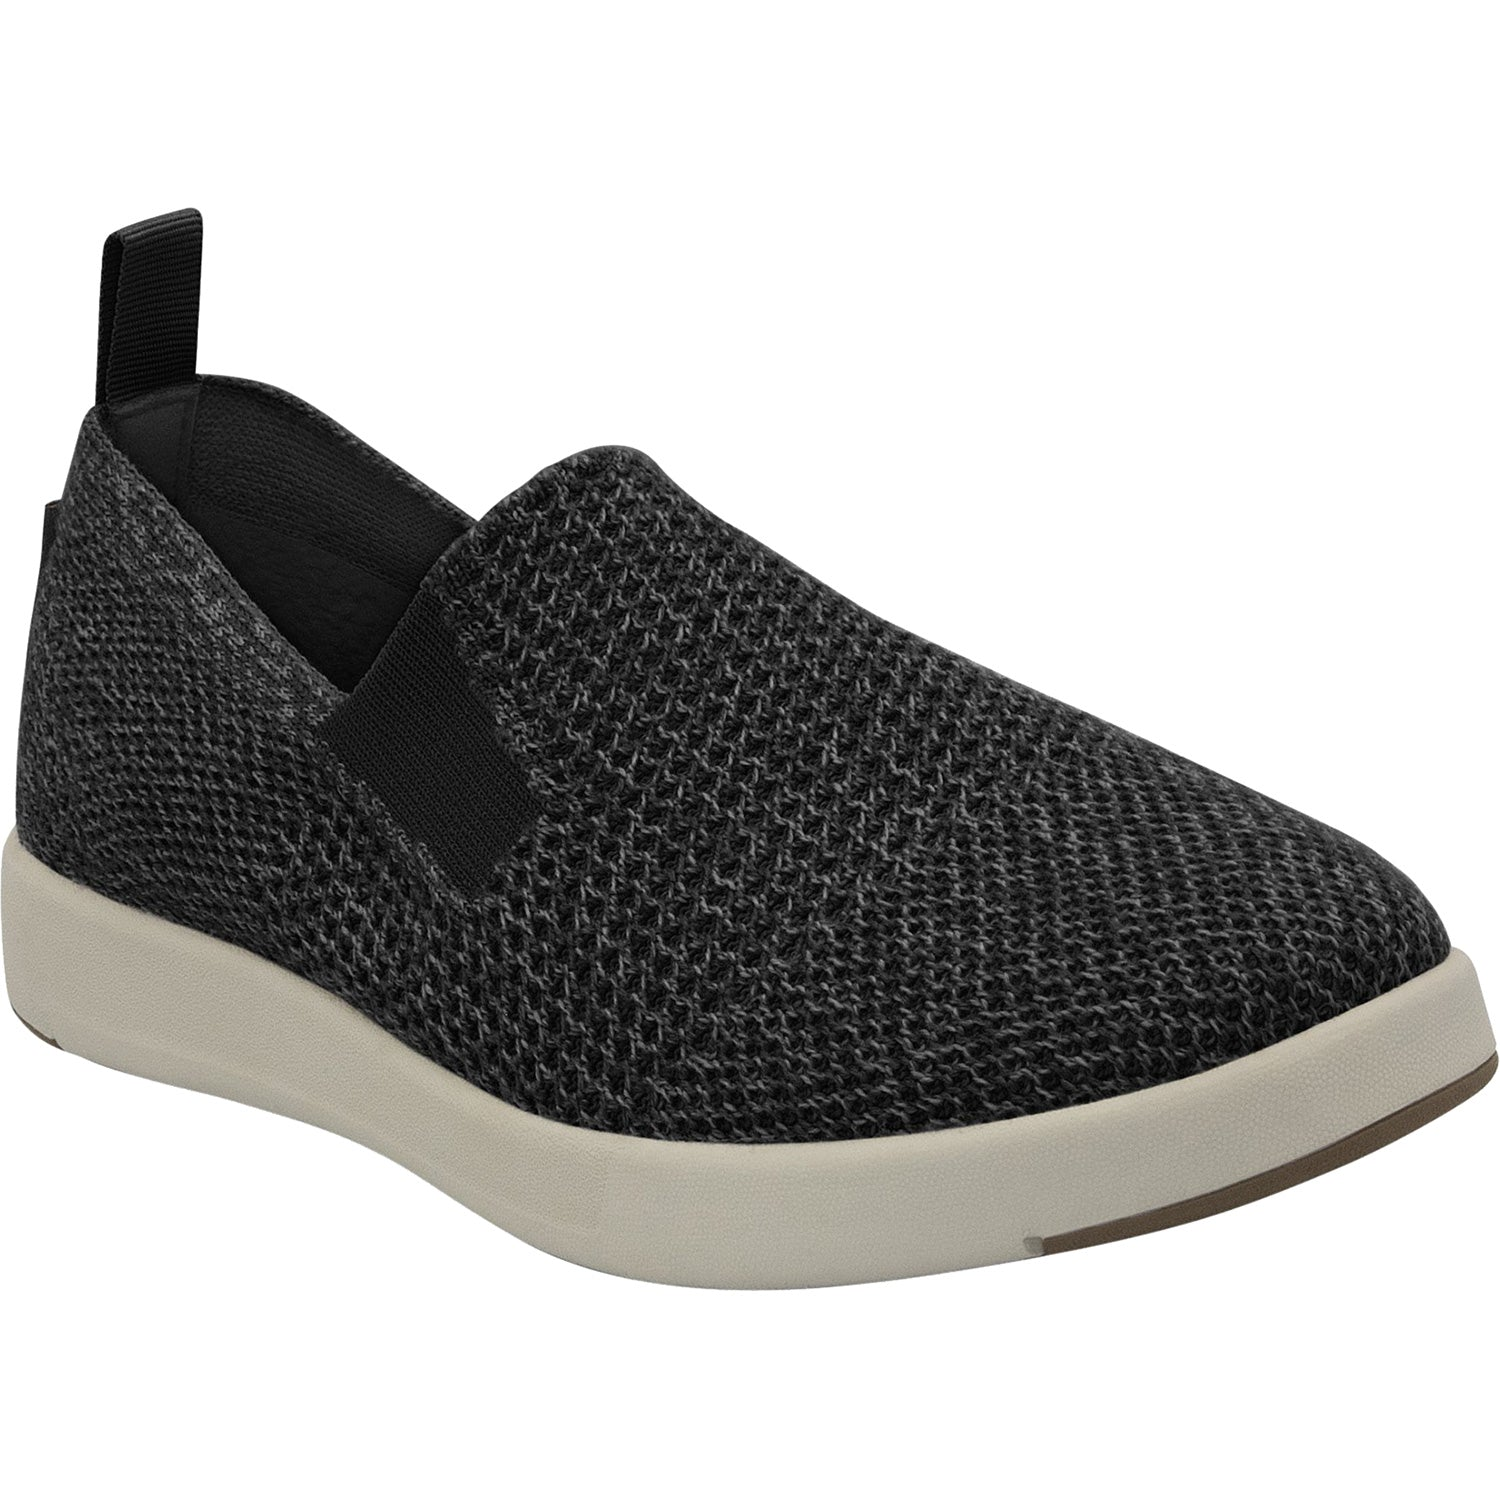 Suffolk Casual Slip On